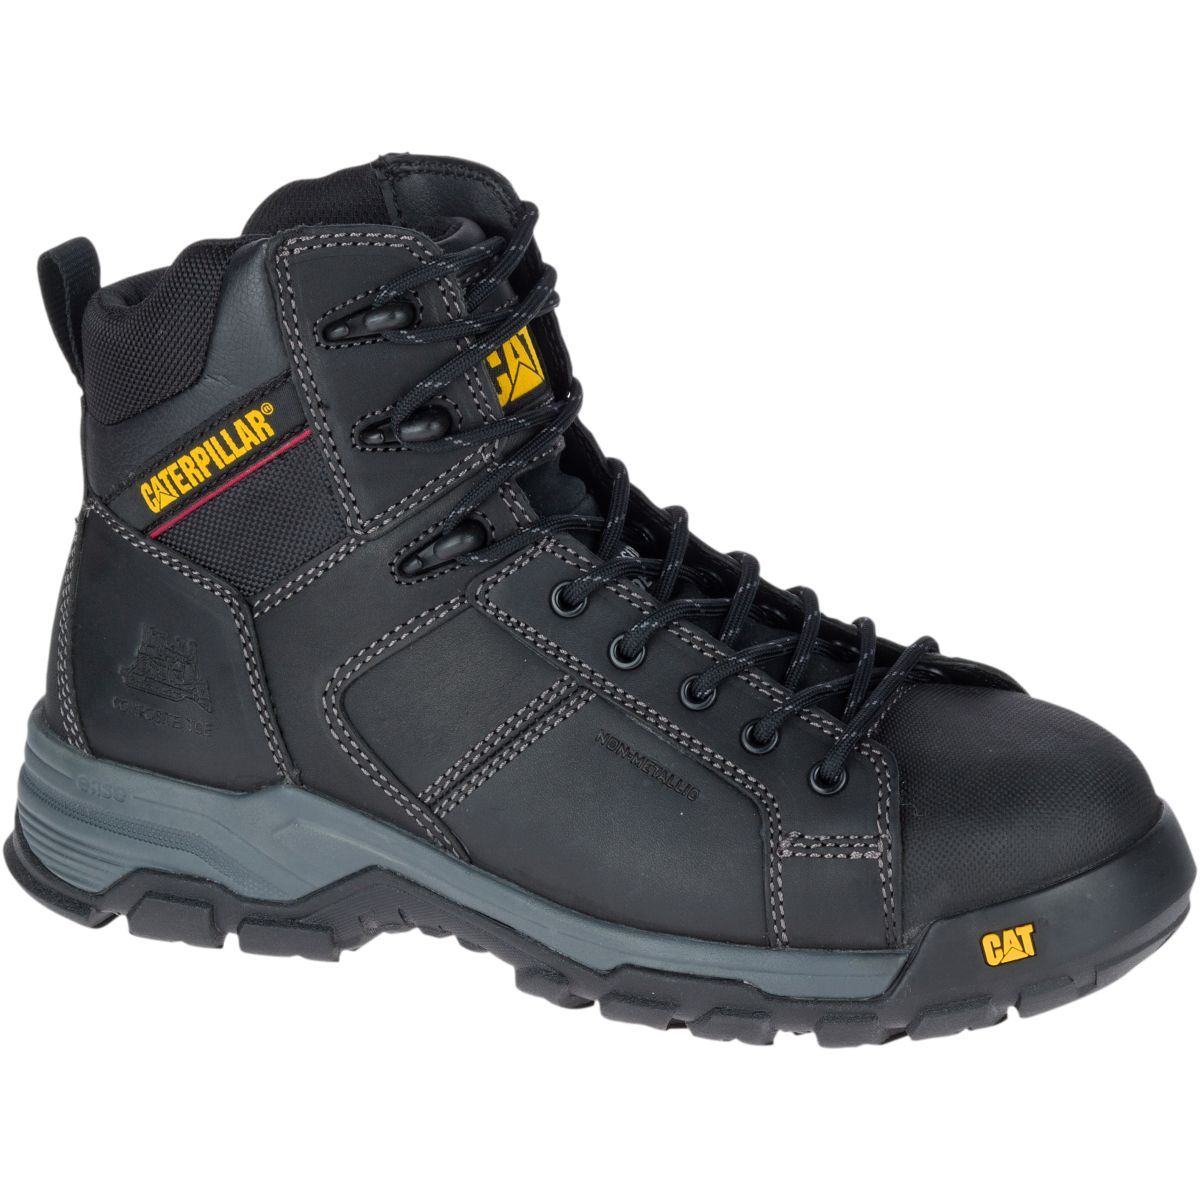 caterpillar shoes astm f2413-11 standards-based curriculum desig